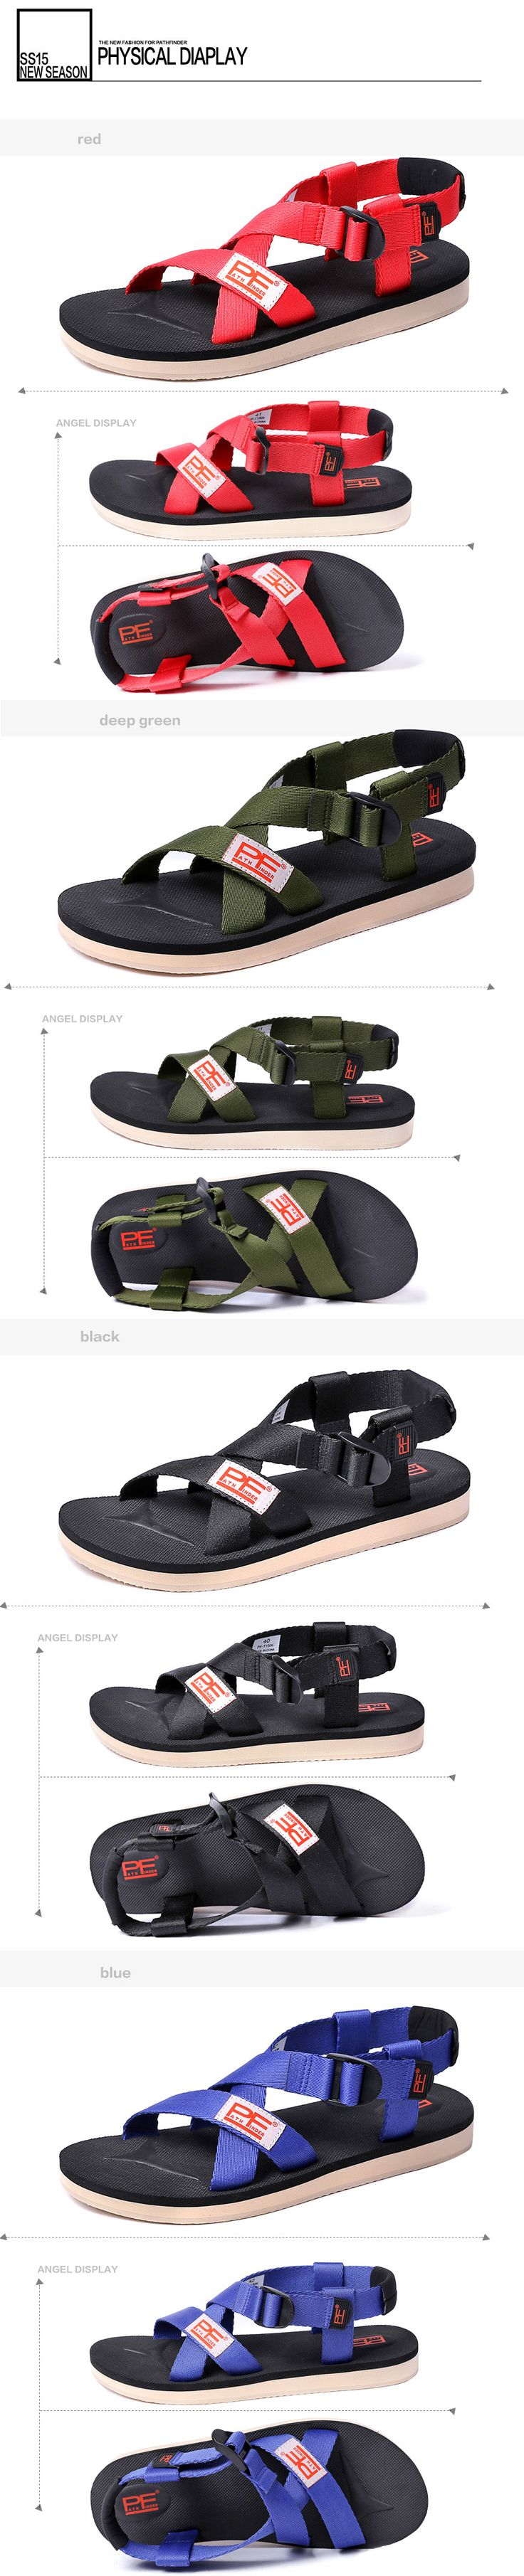 Aliexpress.com : Buy Pathfinder High Quality Men Summer Sandals Leisure Man Outdoor Leather Sandals Plus Size Black Red Casual Summer slippers 2016 from Reliable sandals pictures suppliers on Pathfinder PathFinder store